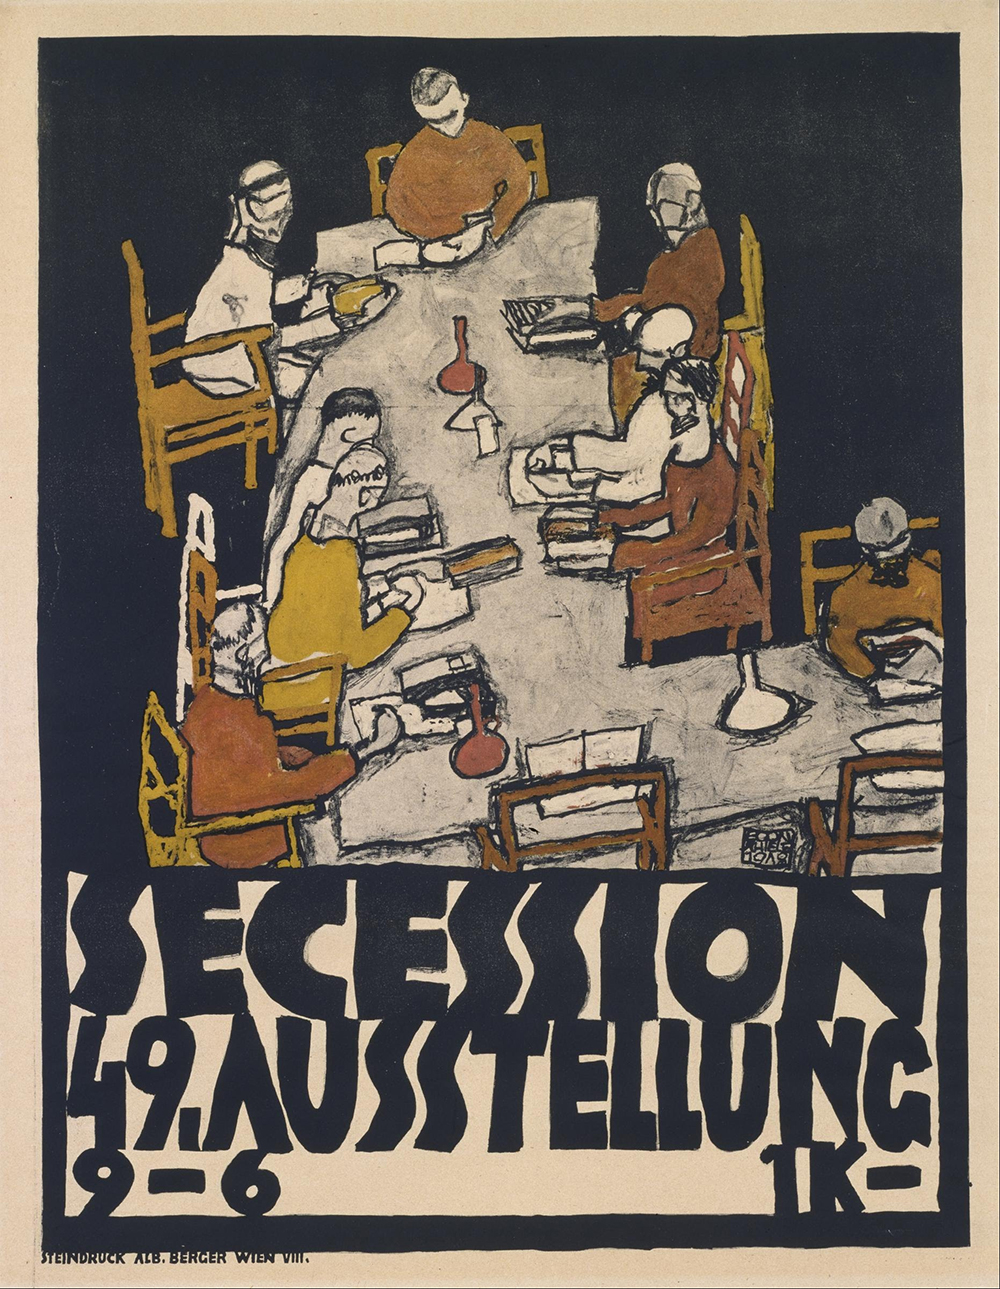 Poster for the 49th Exhibition of the Vienna Secession, by Egon Schiele, 1918.